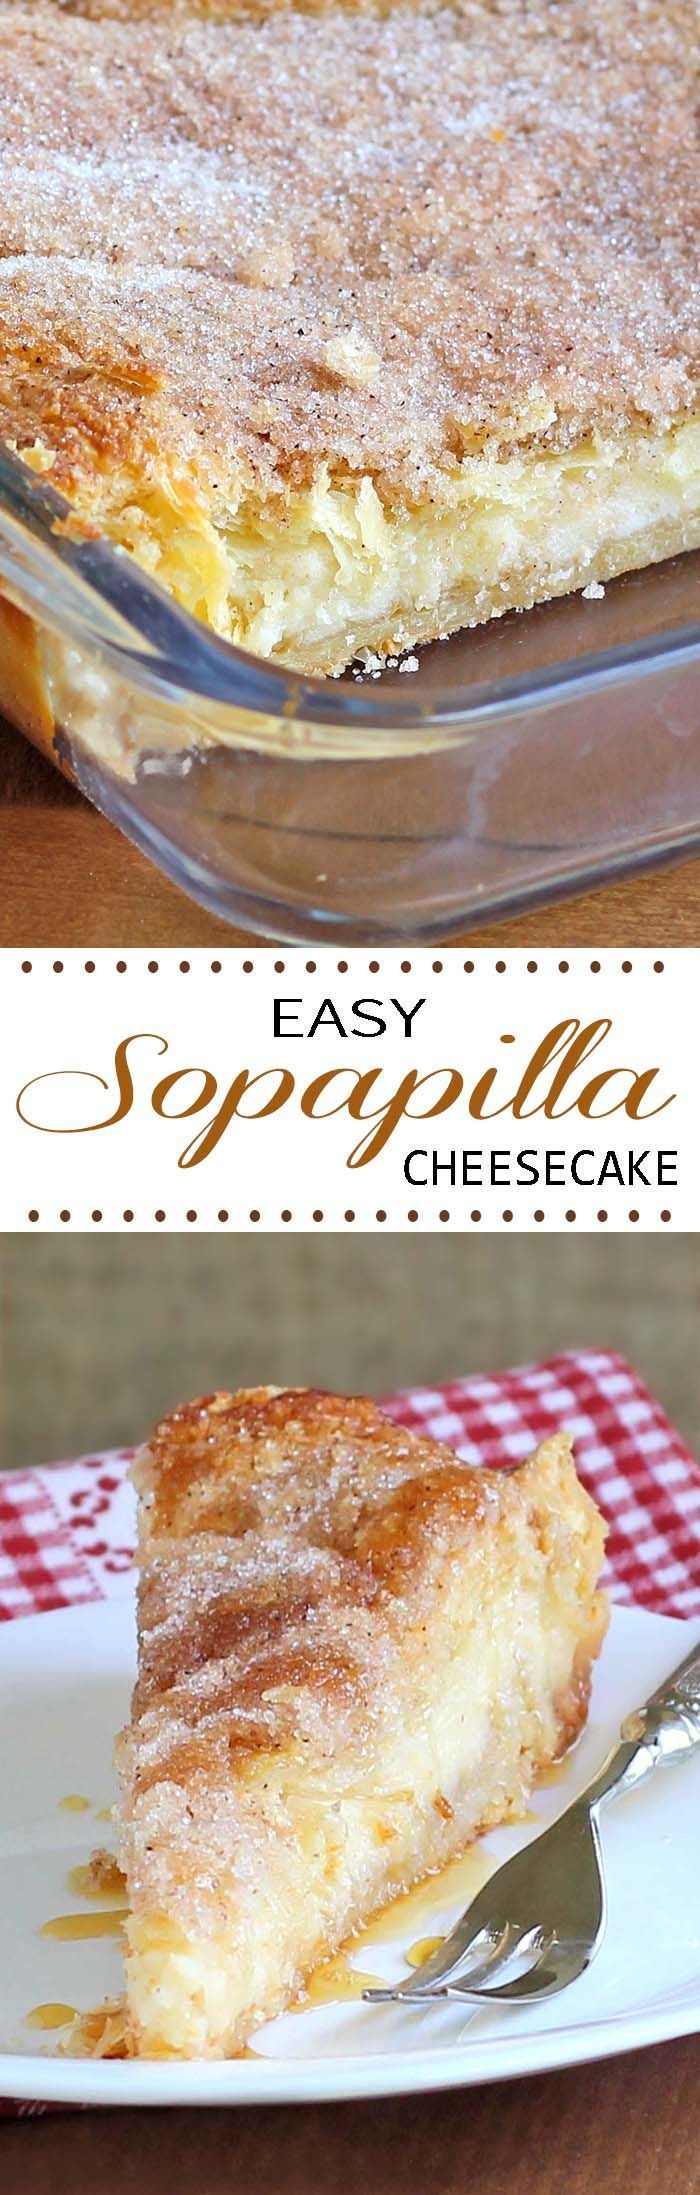 Sopapilla Cheesecake Dessert? Check. Easy? Check. So freakin' good they'll blow your mind? Check. (scheduled via www.tailwindapp.com)